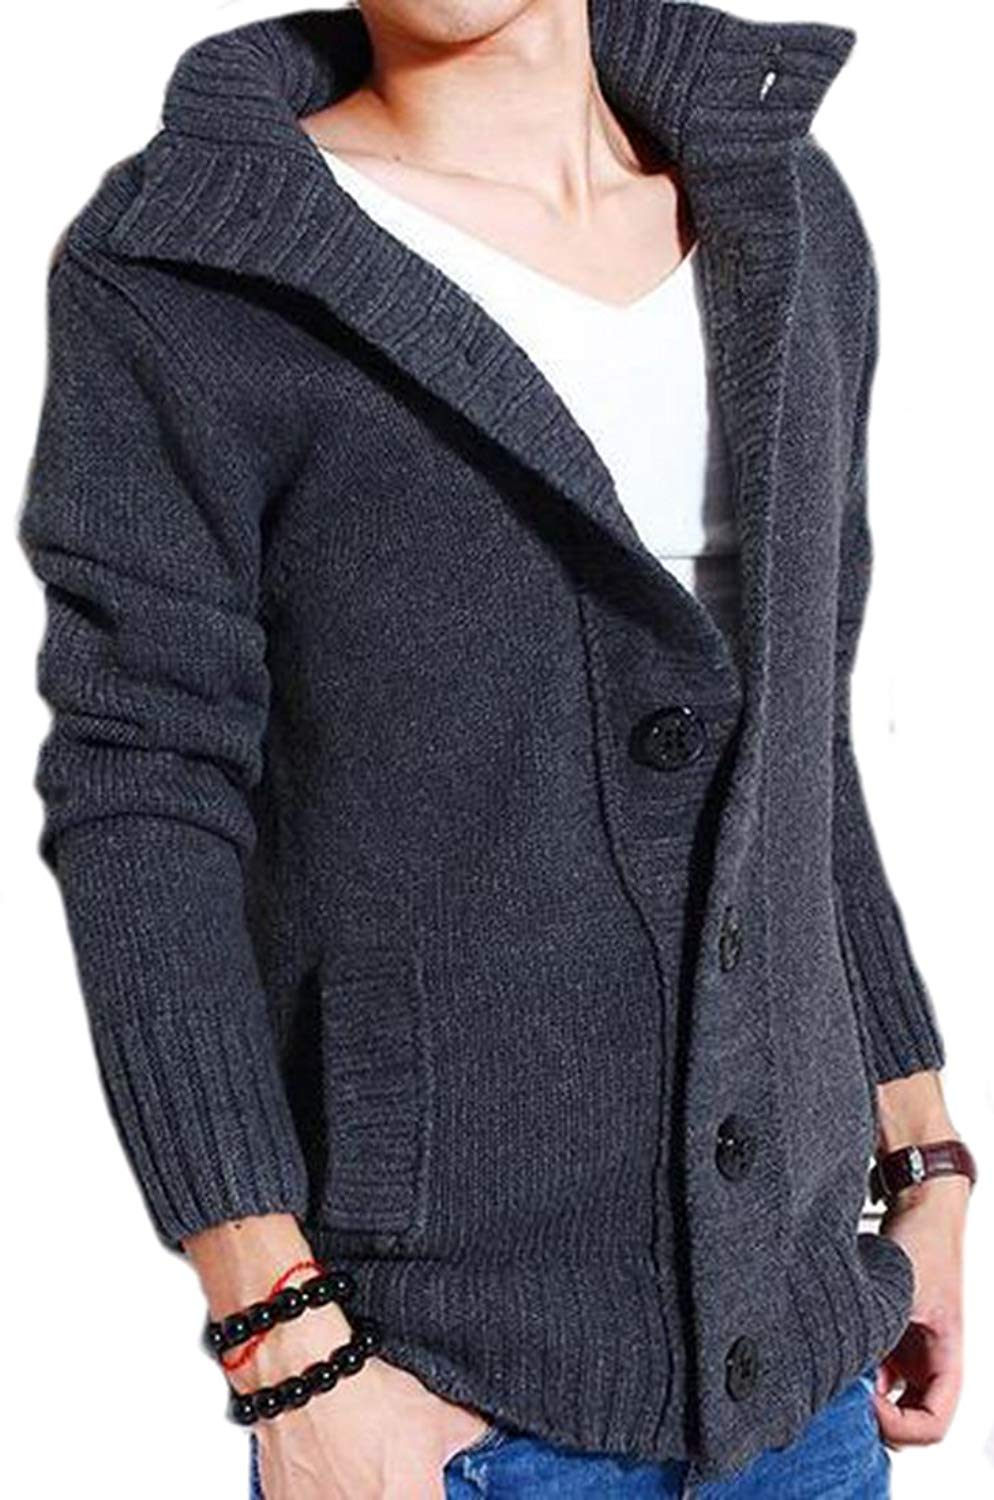 fb65ef25825f2 Get Quotations · KXP Mens Casual Baggy Knitted Buttonup Warm Outer Sweaters